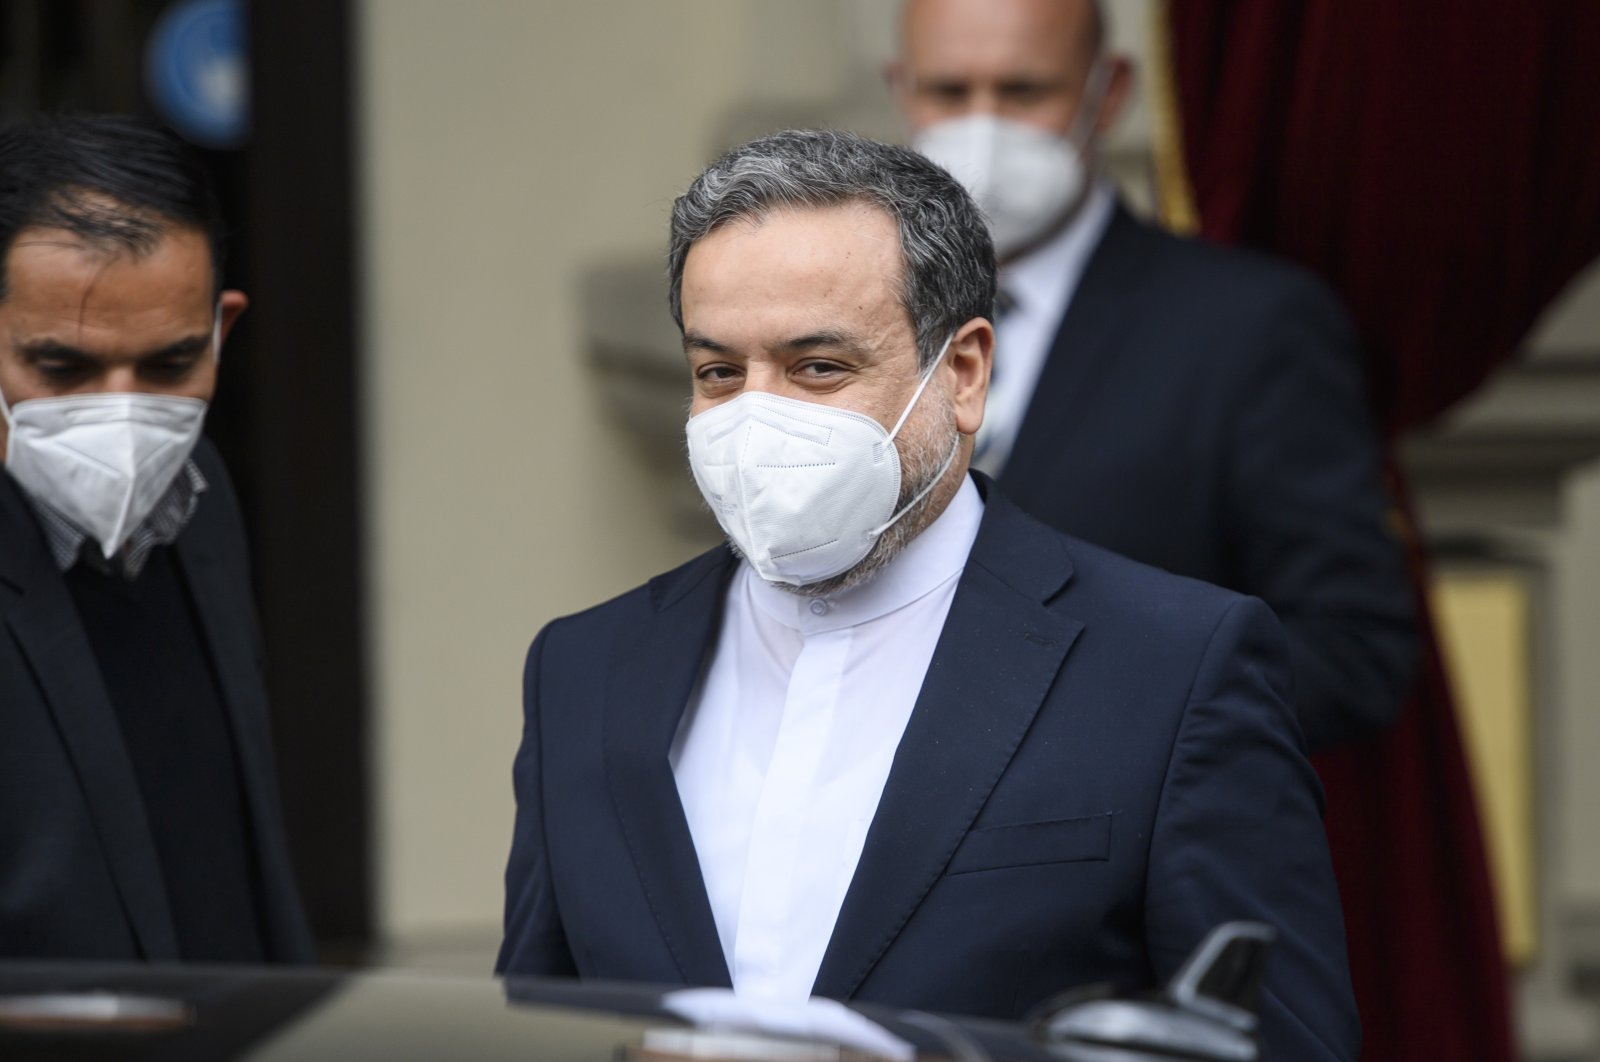 Iranian Deputy Foreign Minister Abbas Araghchi leaves a hotel after bilateral meetings for the Joint Comprehensive Plan of Action's (JCPOA) meeting in Vienna, Austria, April 16, 2021. (EPA Photo)